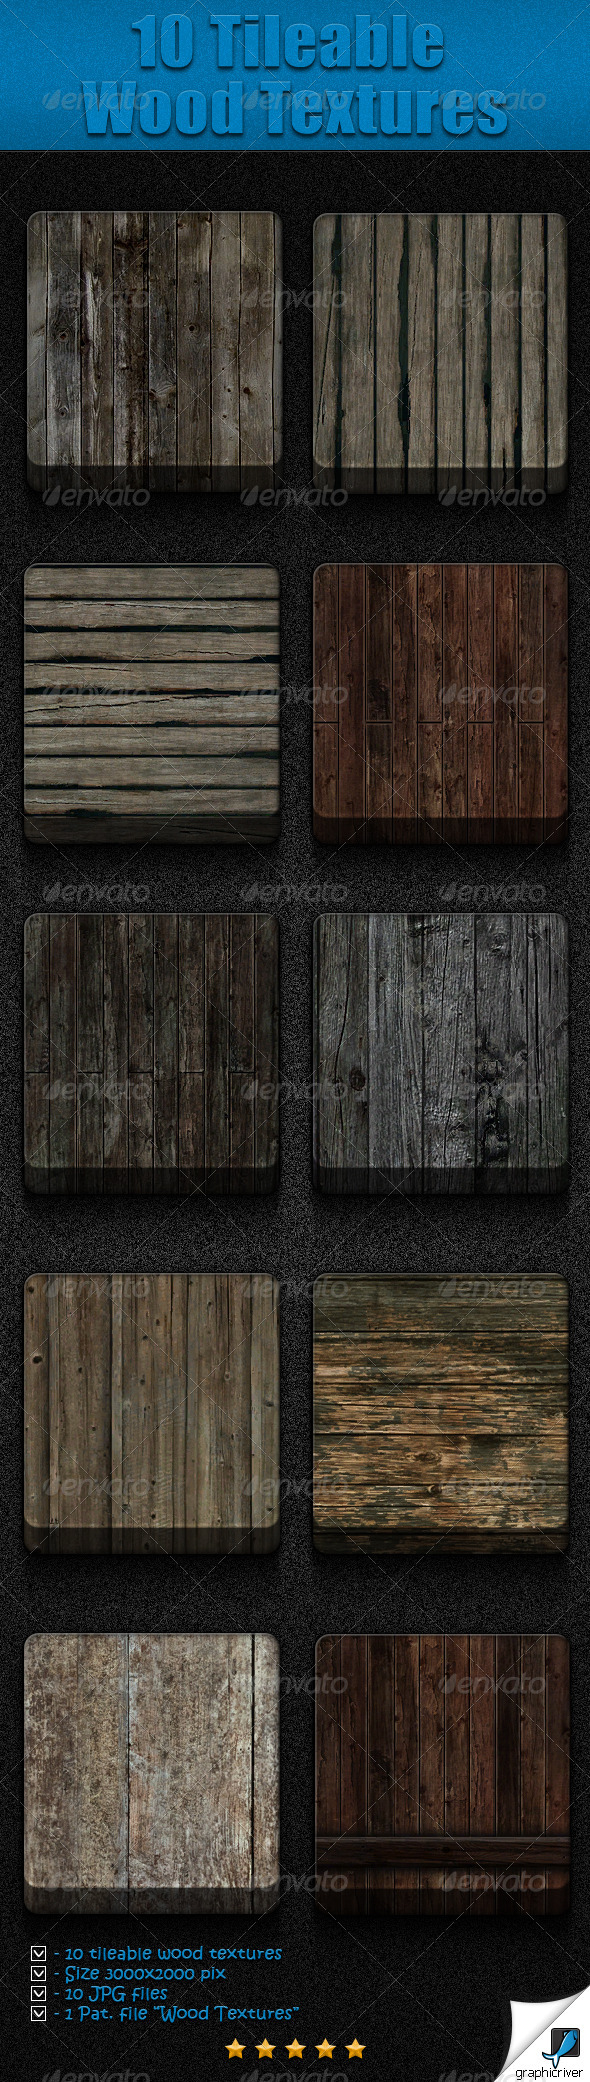 10 Tileable Wood Textures - Wood Textures